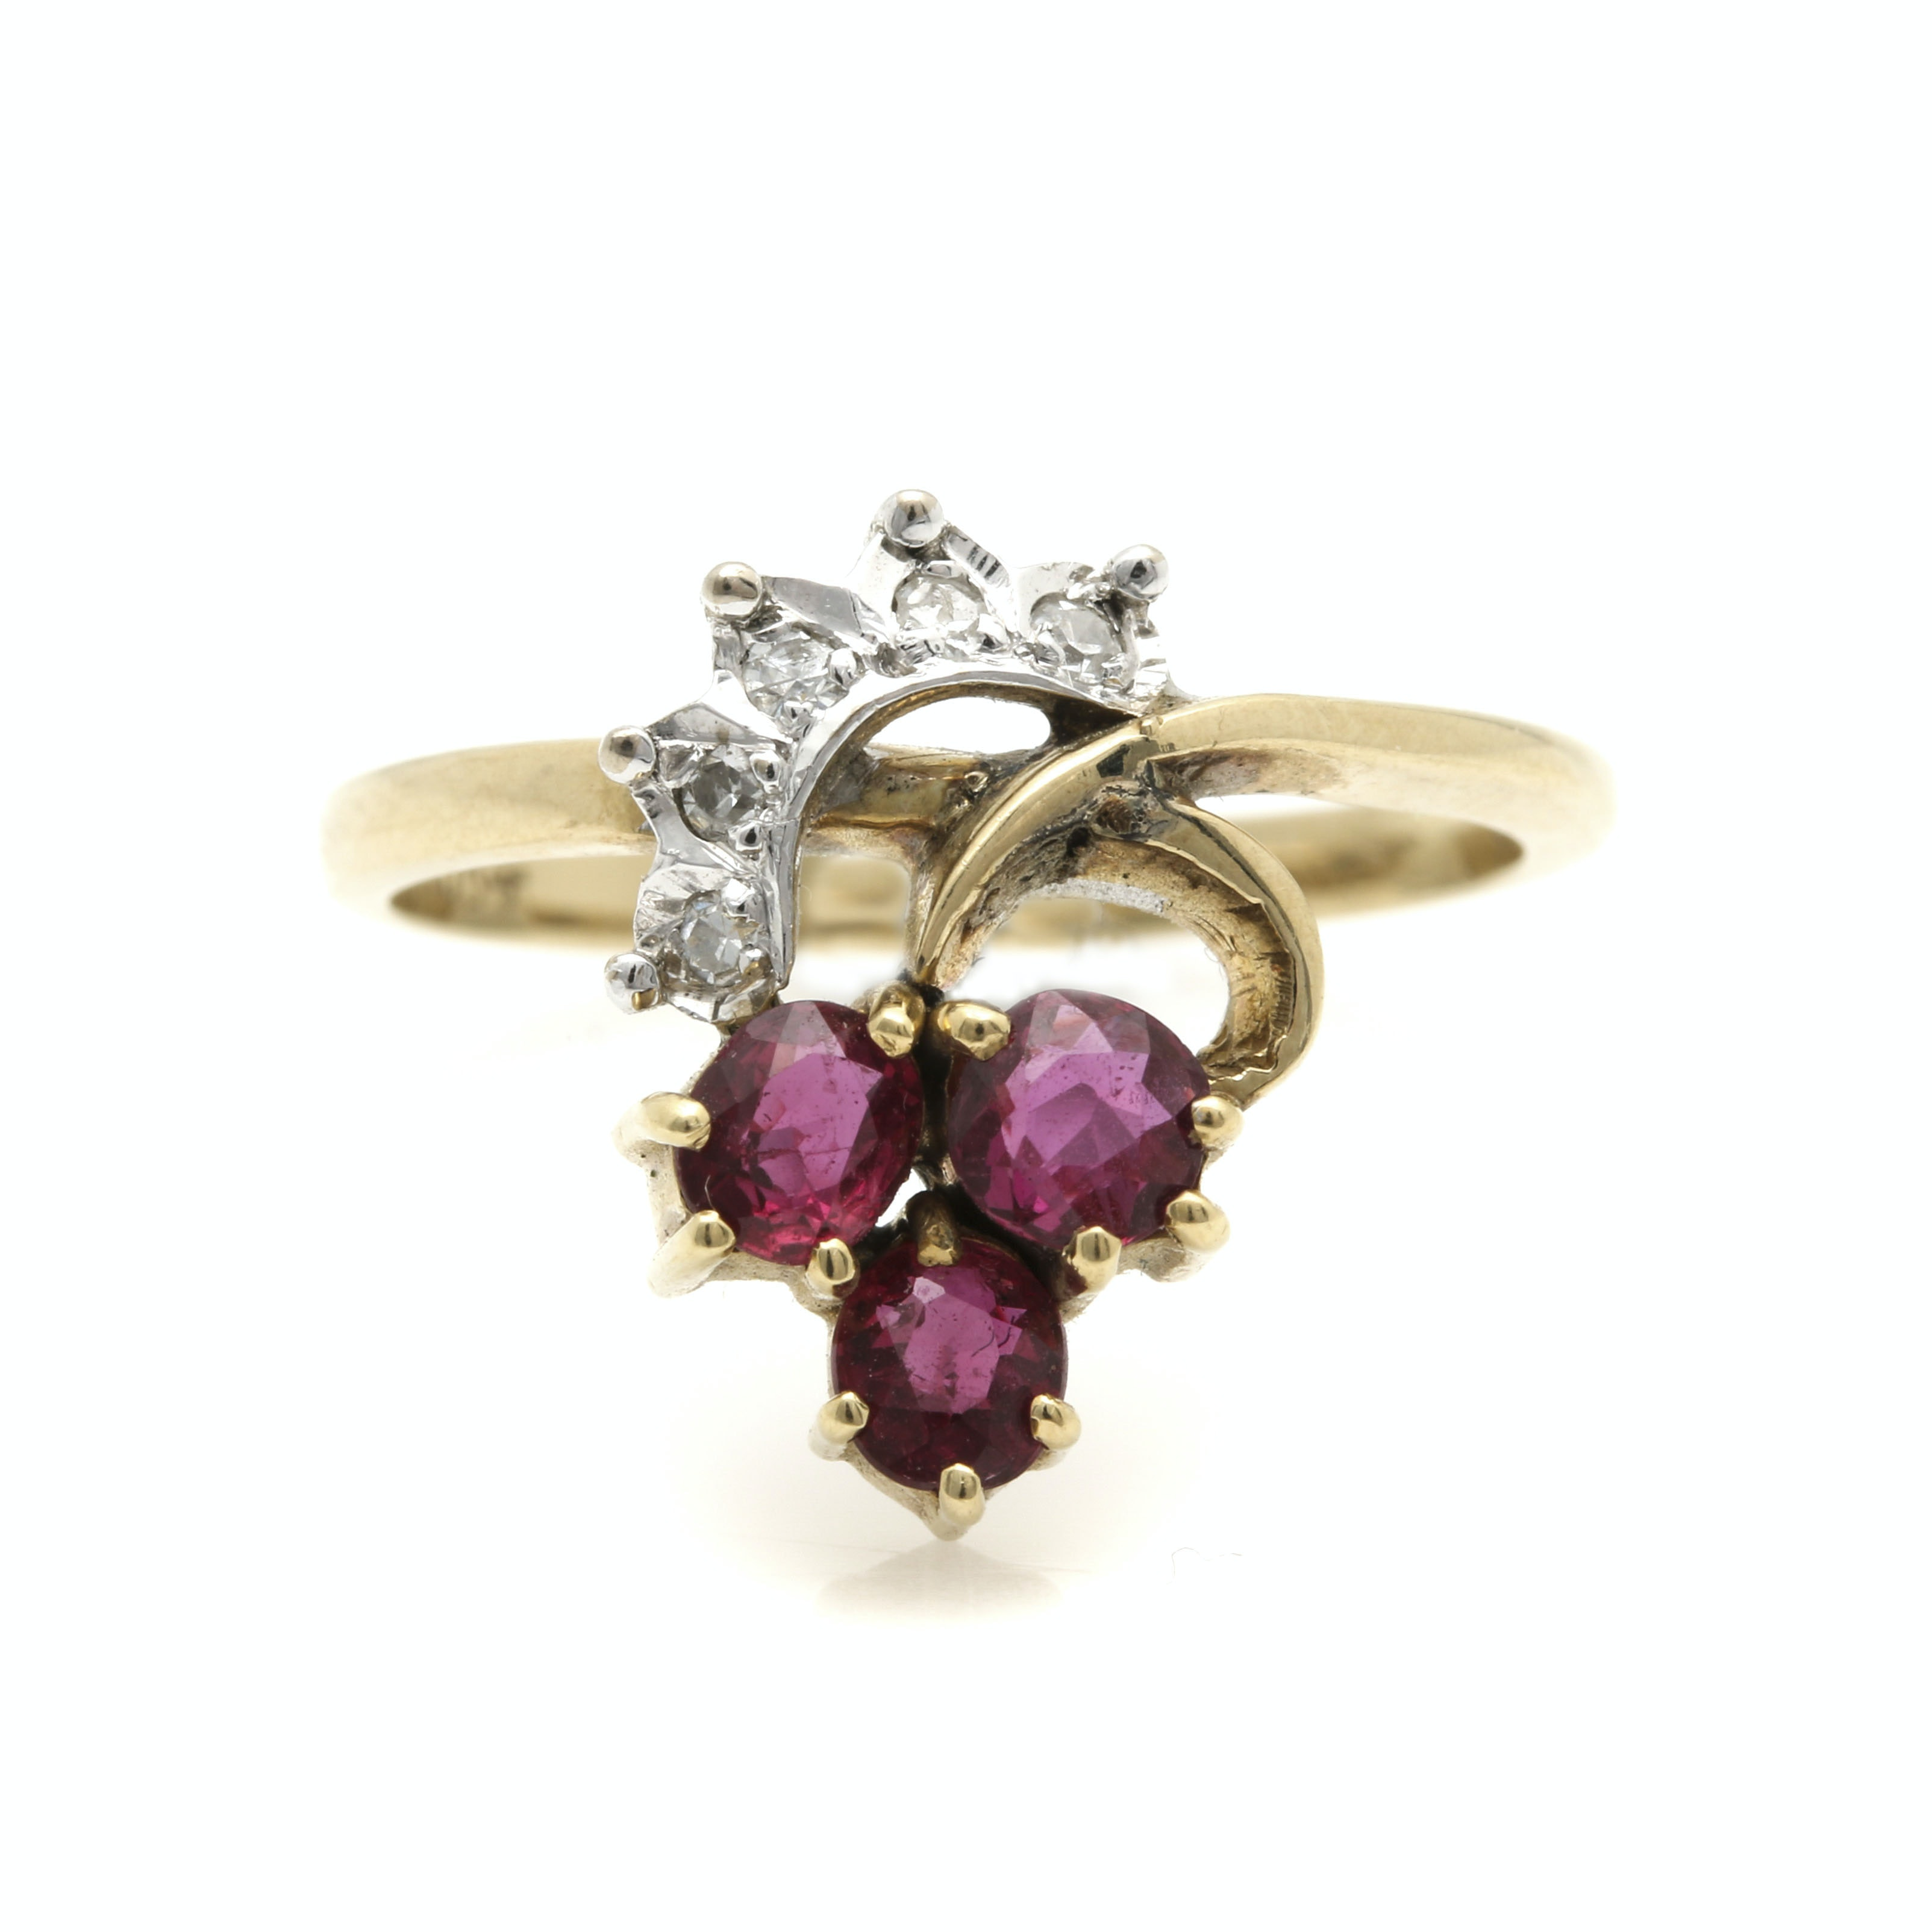 14K White and Yellow Gold Ruby and Diamond Ring